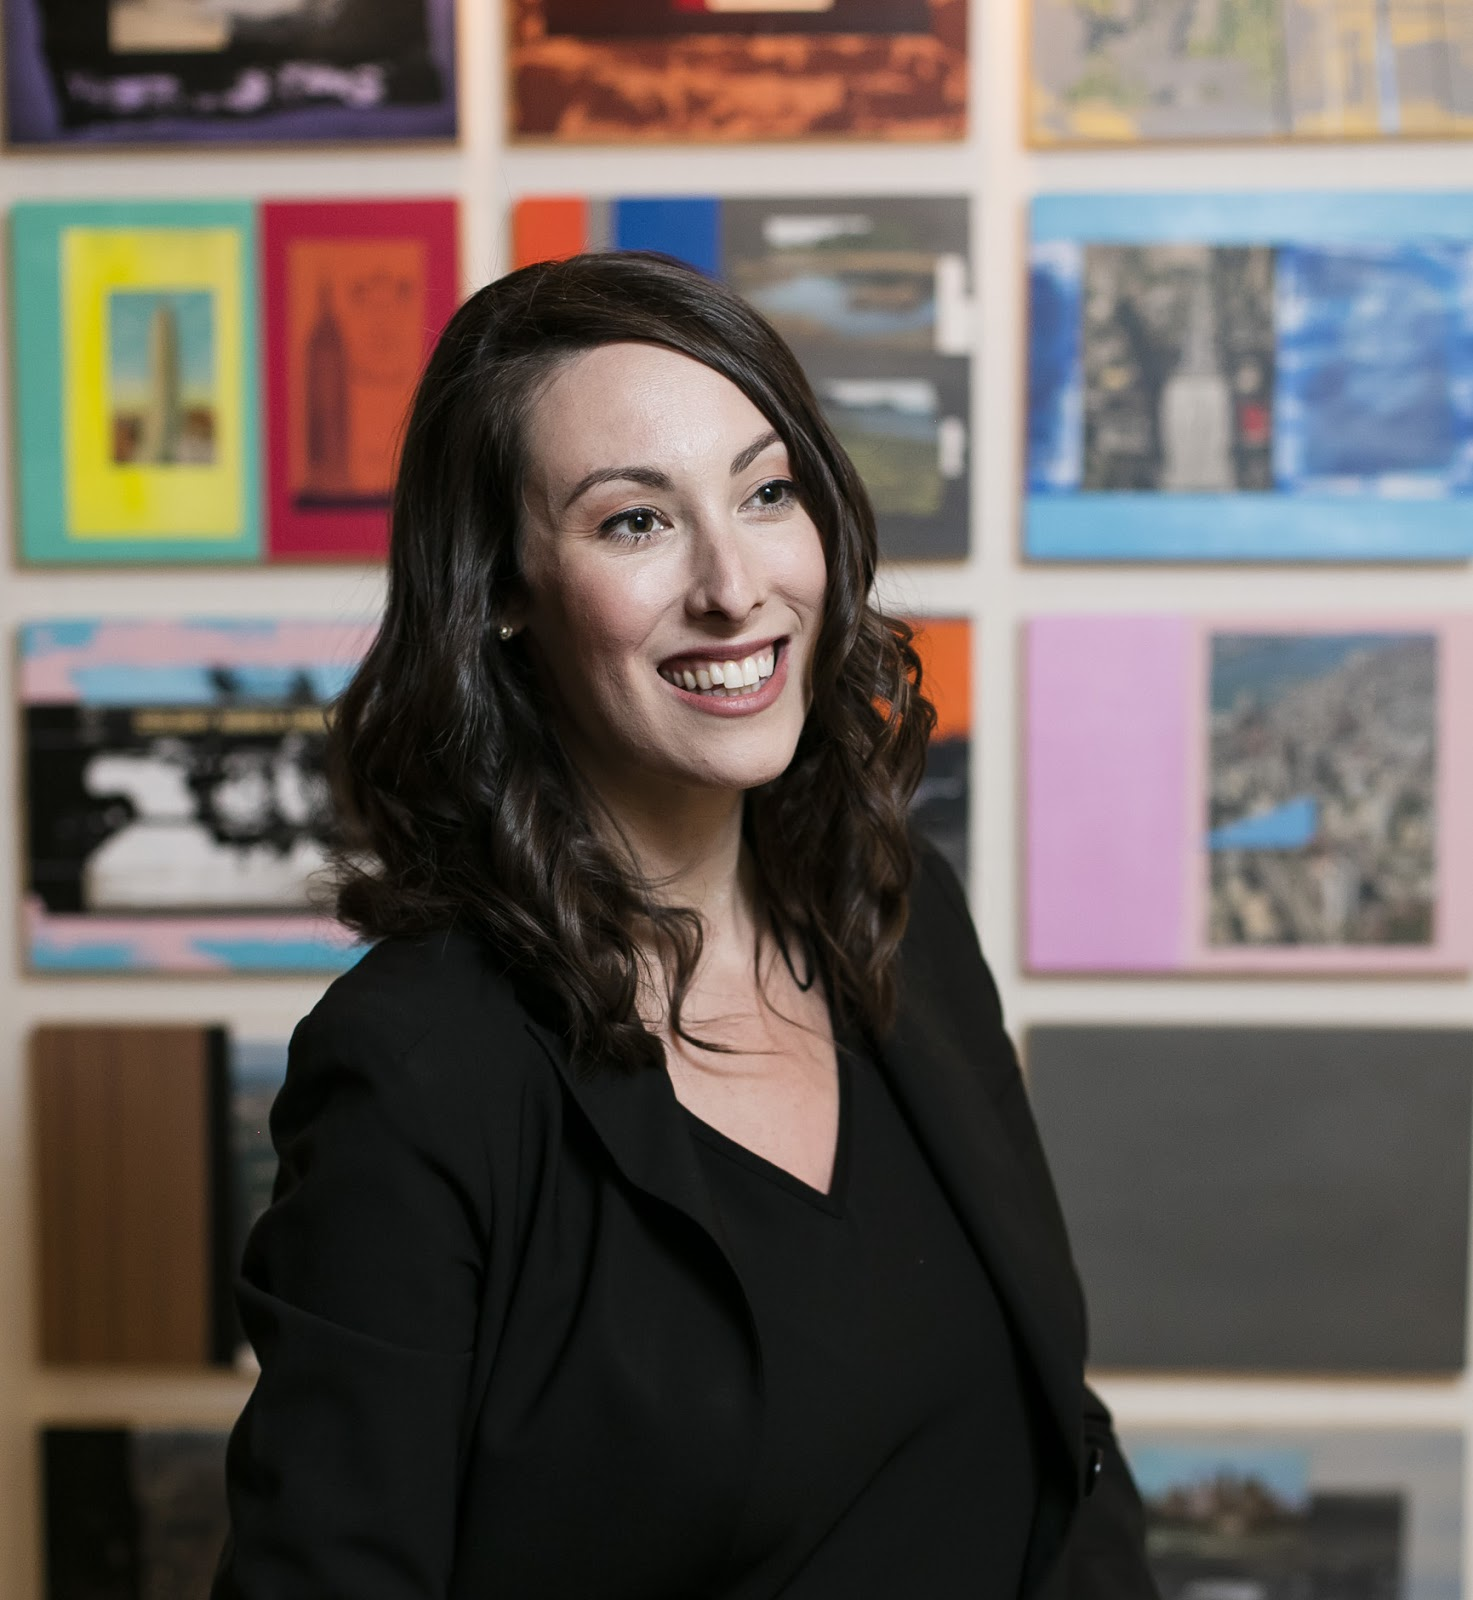 Liz Long, founder of Learn To Make A Product headshot